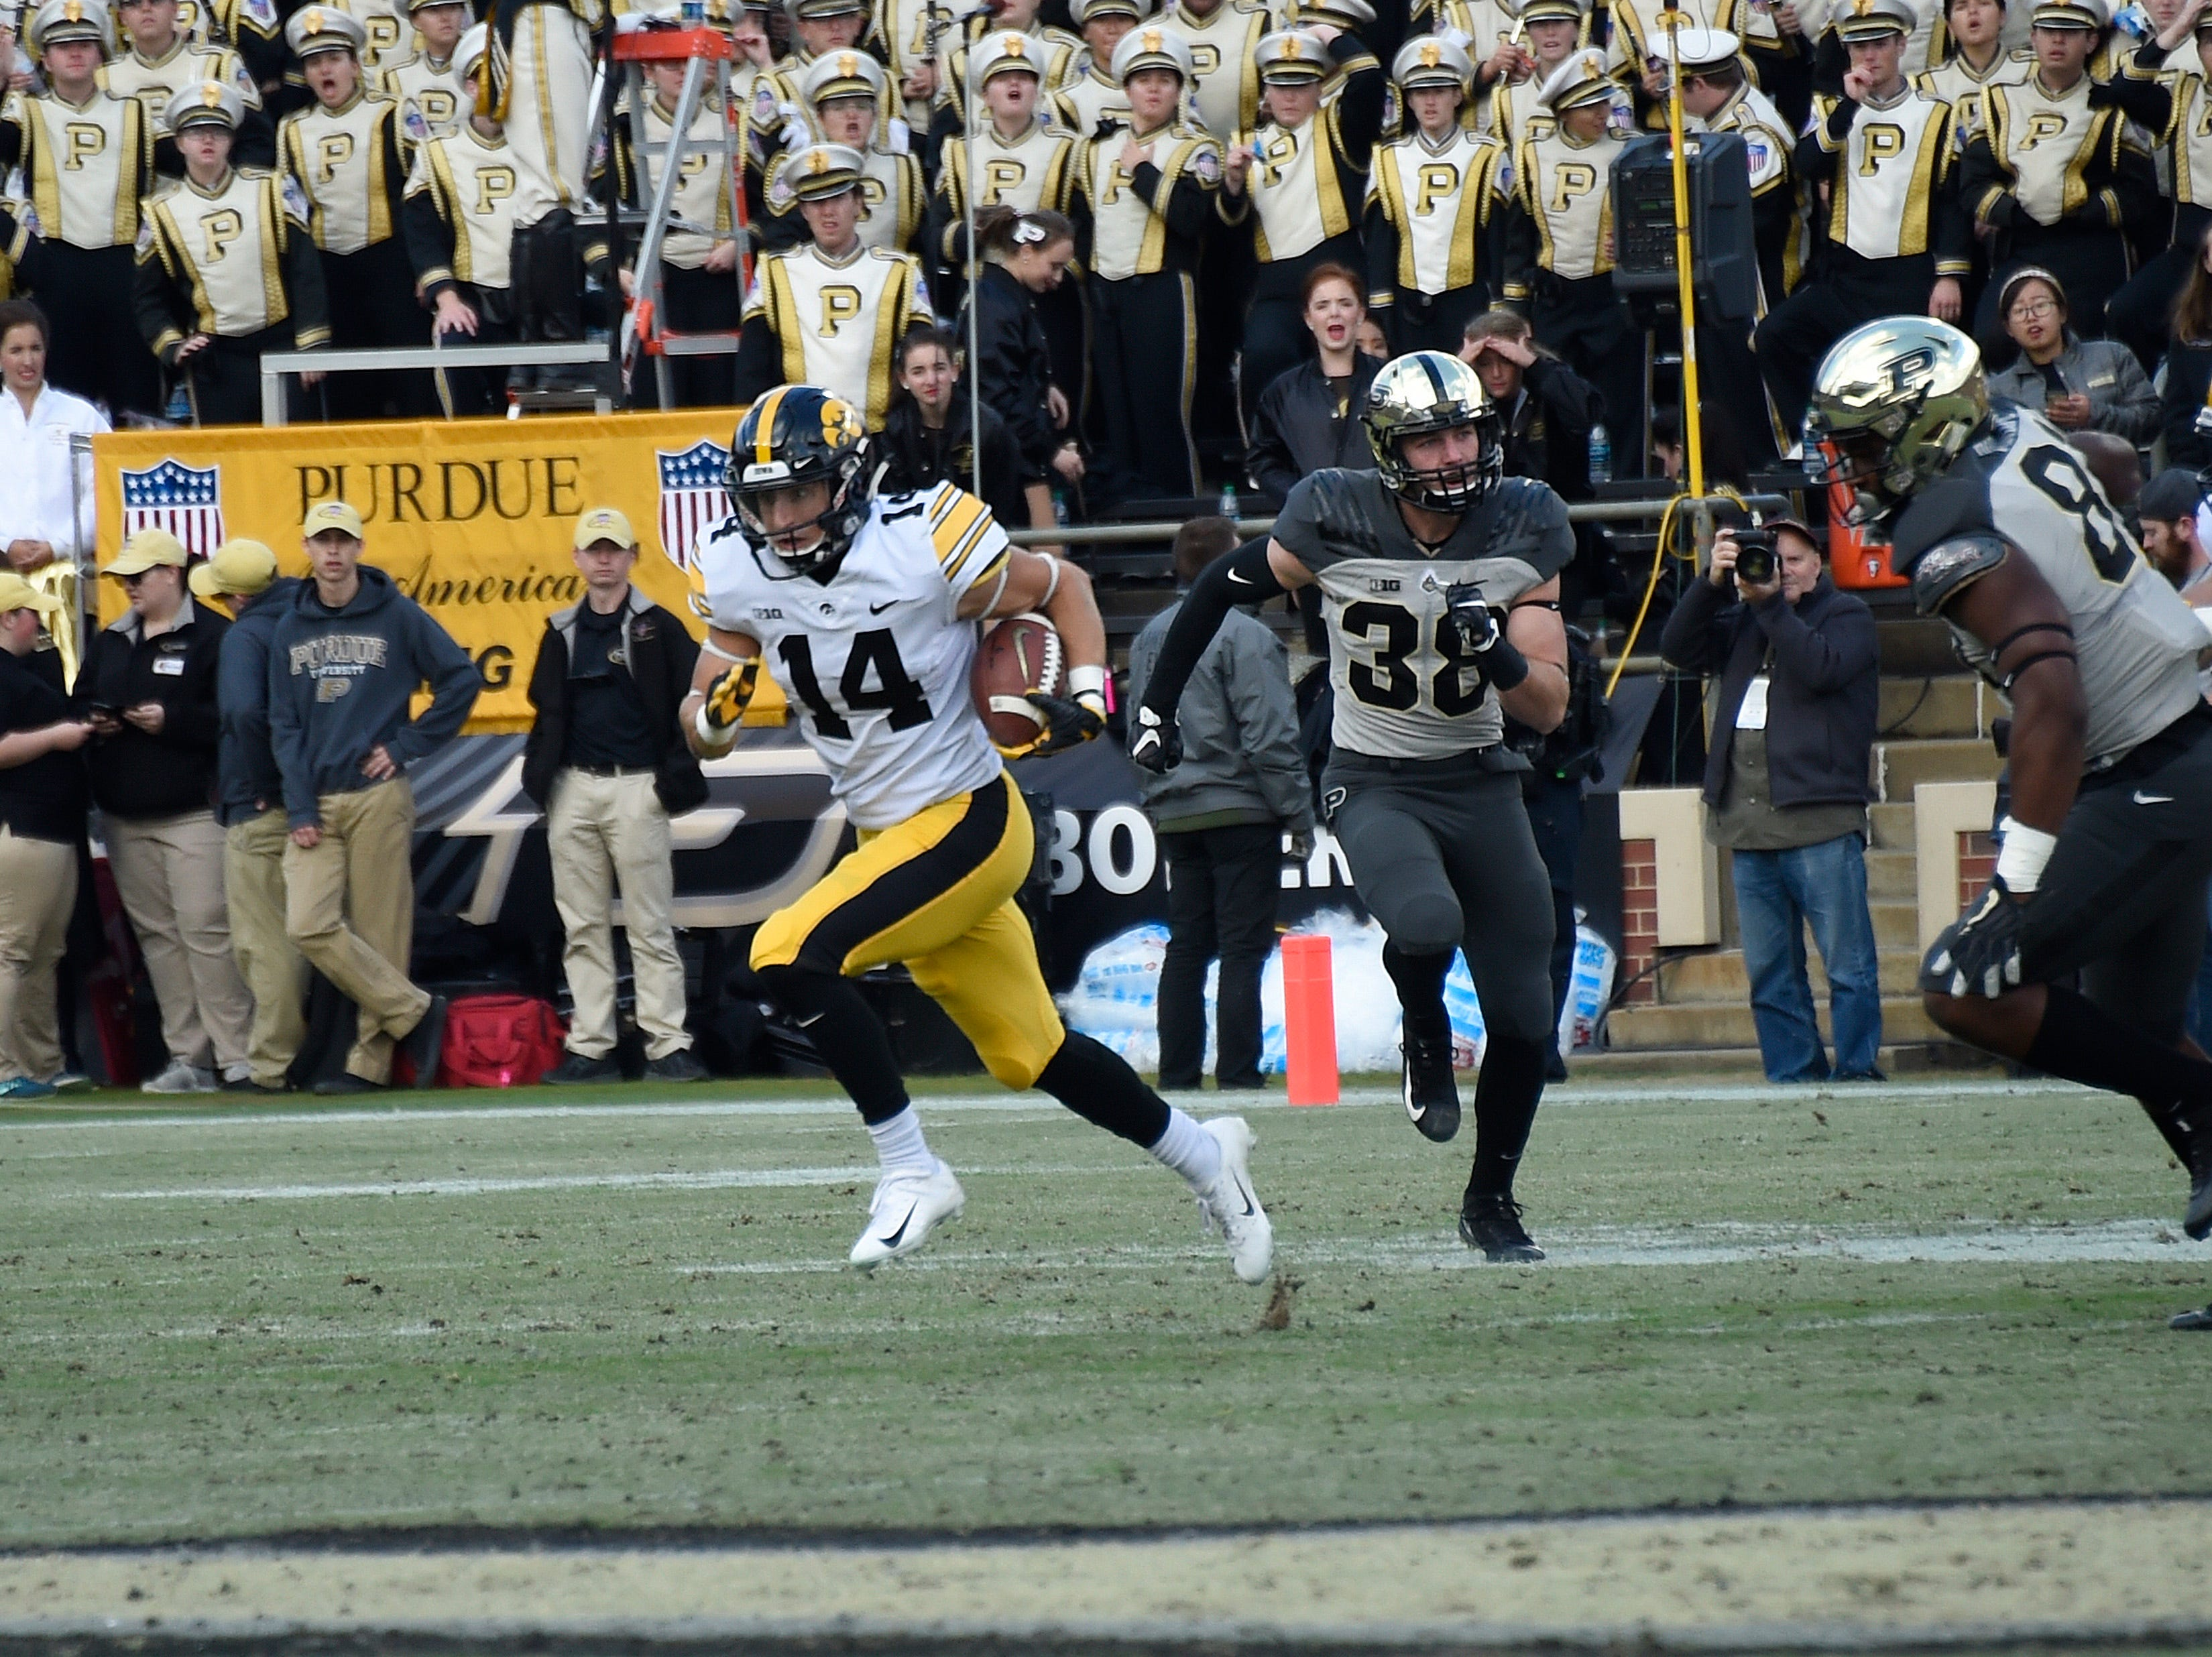 Nov 3, 2018; West Lafayette, IN, USA;  Iowa Hawkeyes wide receiver Kyle Groeneweg (14) runs with the ball as  Purdue Boilermakers safety Brennan Thieneman (38) pursues him at Ross-Ade Stadium.